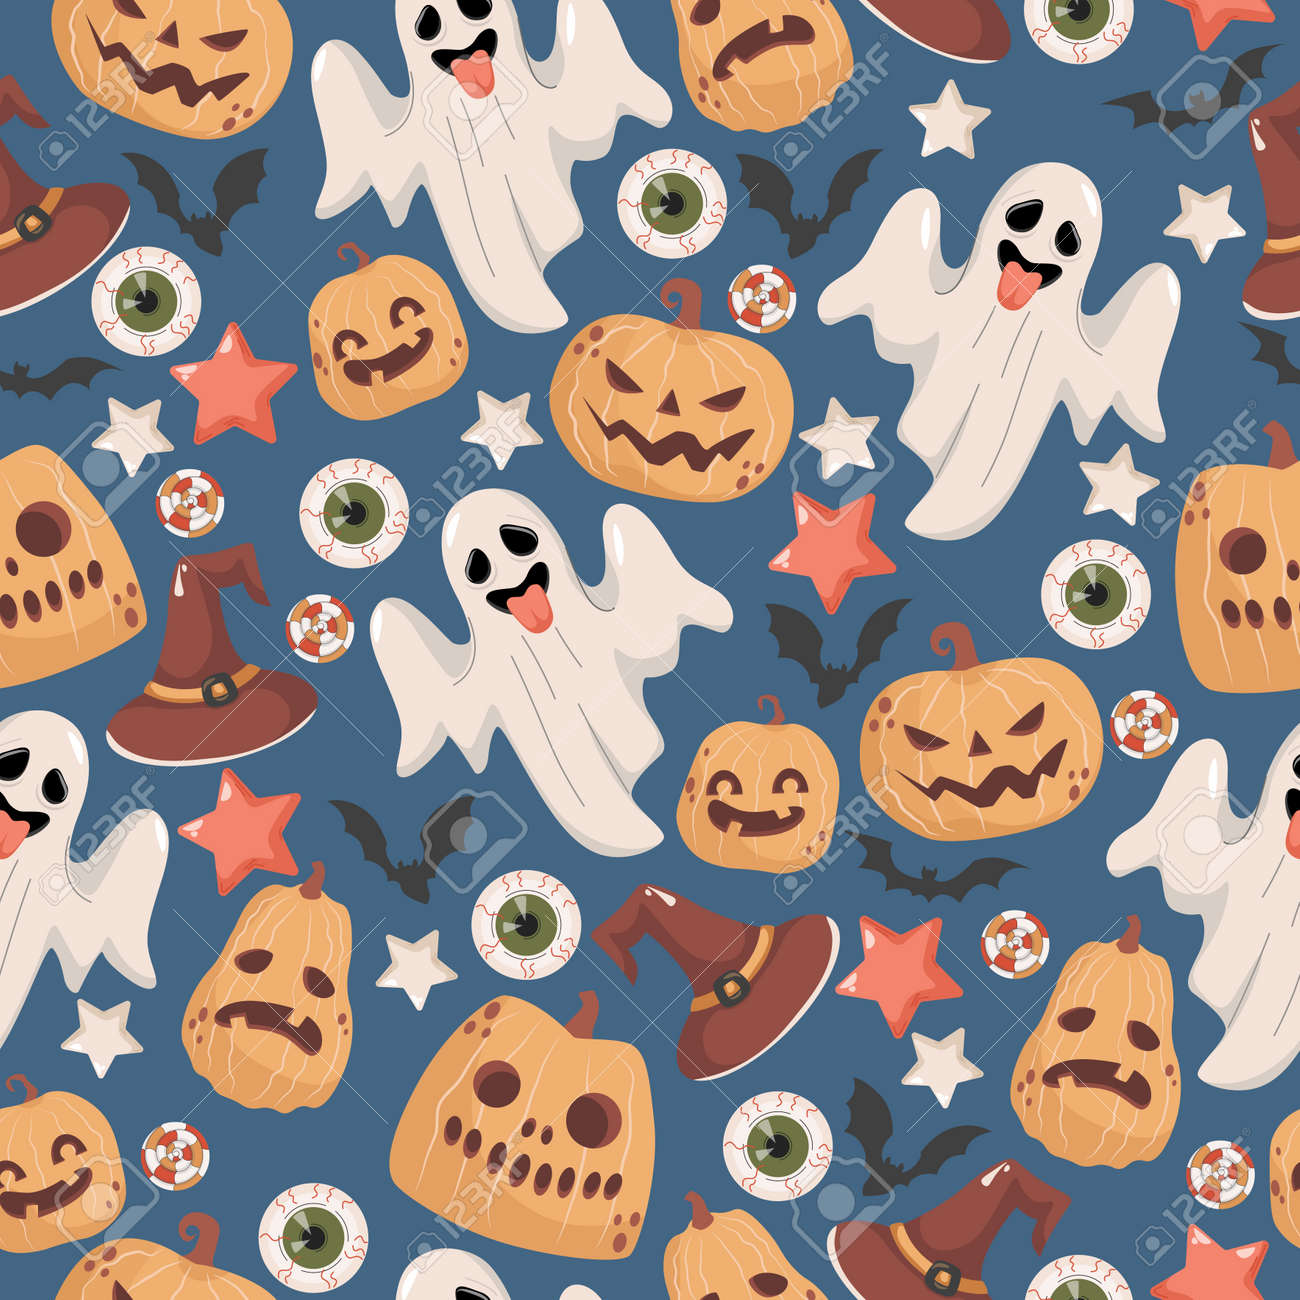 Halloween seamless pattern. Scary ghosts, witch hats, stars, bats, candies, human eyes, and pumpkins. - 173869203